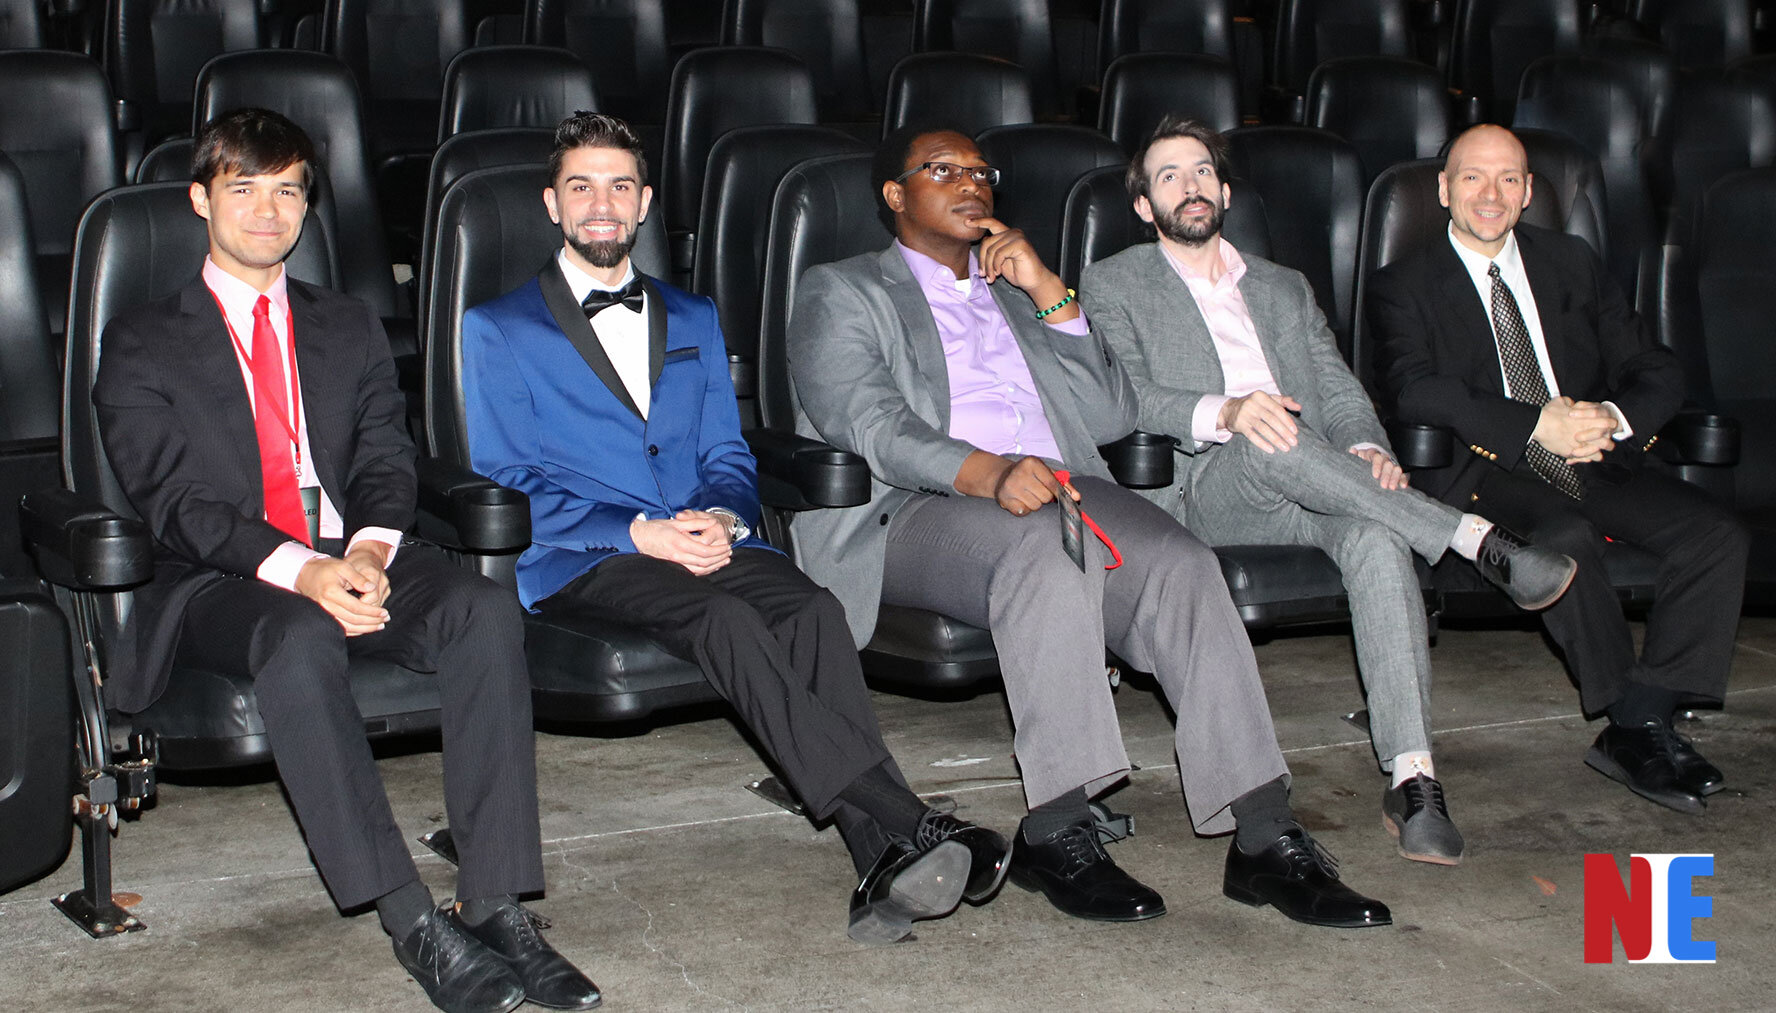 L-R Alex Ellsworth, Chase Michael Pallante, Divoni Simon, Sean A. Kaufman, and Michael Paladine at the Los Angeles premiere at Laemmle Theaters in Hollywood on June 12, 2019    Courtesy of NIE